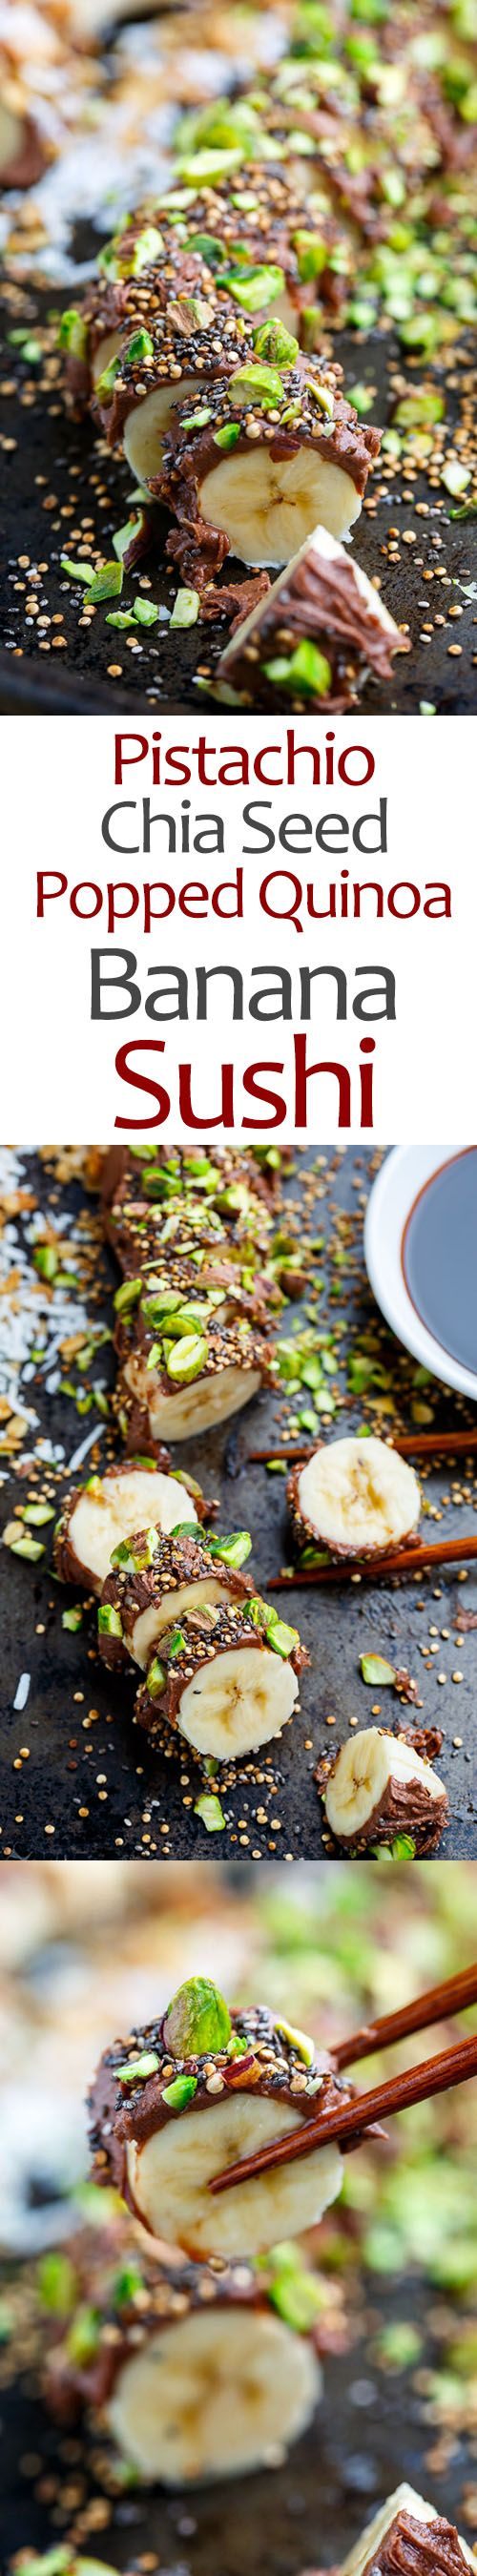 Pistachio, Chia and Popped Quinoa Chocolate Peanut Butter Banana Sushi